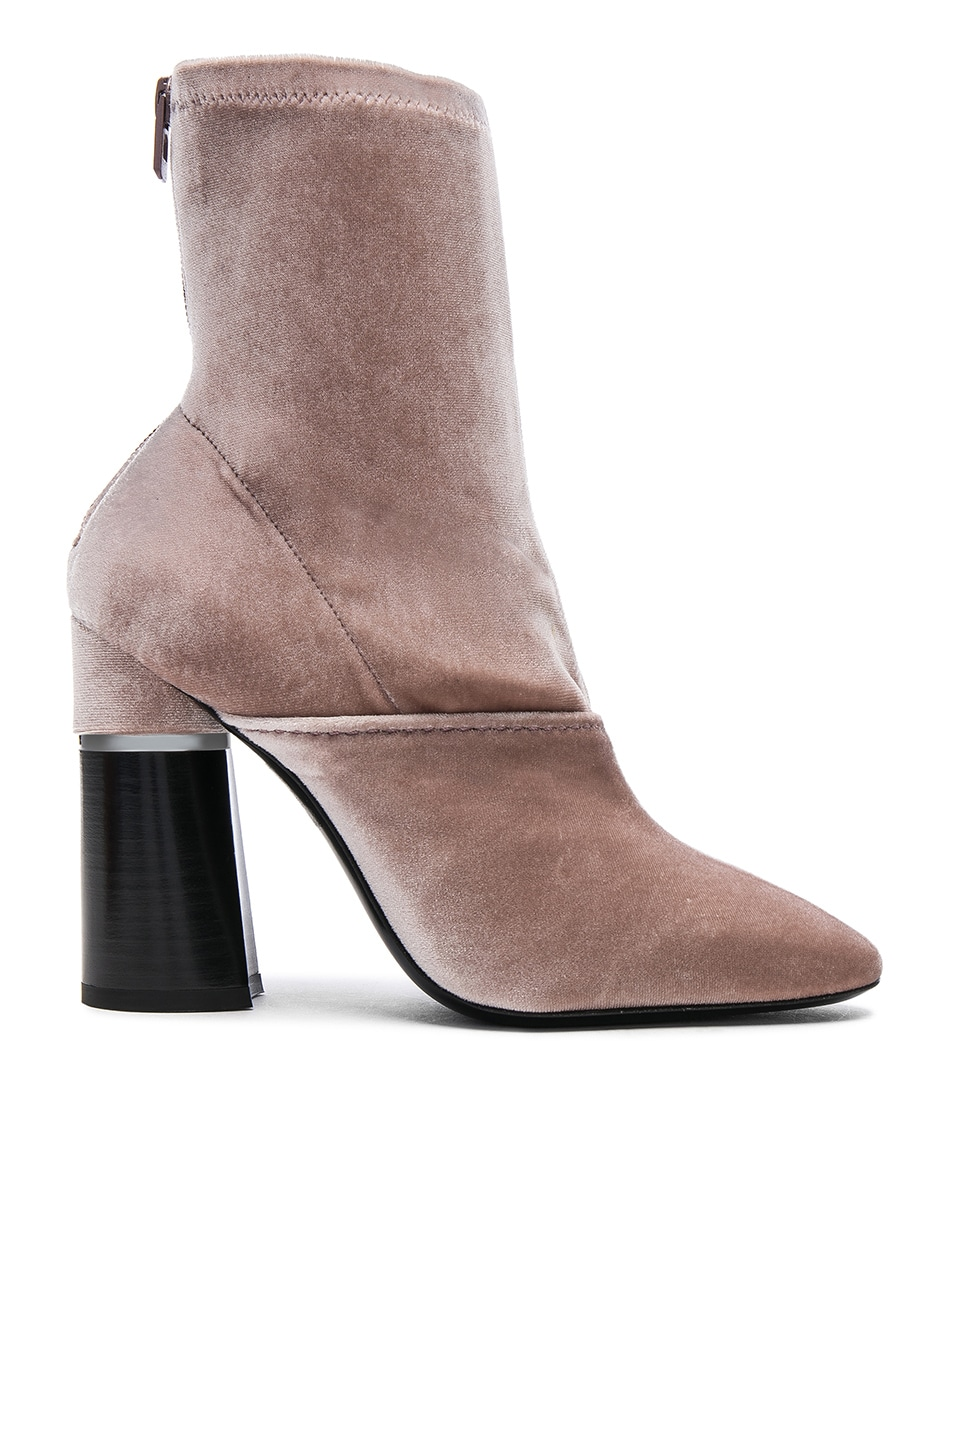 Image 1 of 3.1 phillip lim Velvet Kyoto Boots in Blush